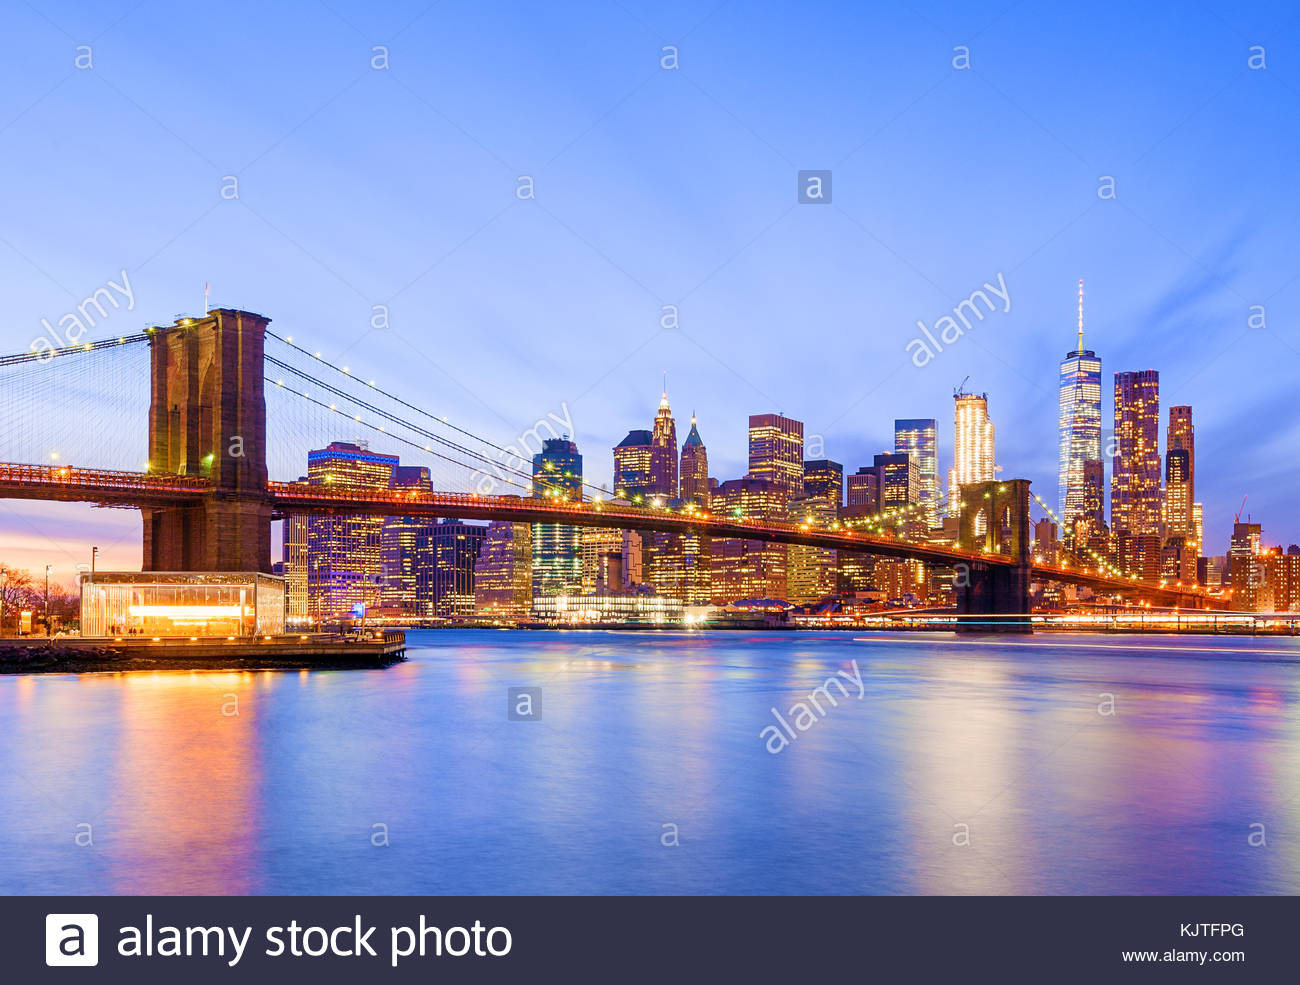 Skyline di New York New York City Brooklyn Bridge Un WTC World Trade Center Immagini Stock